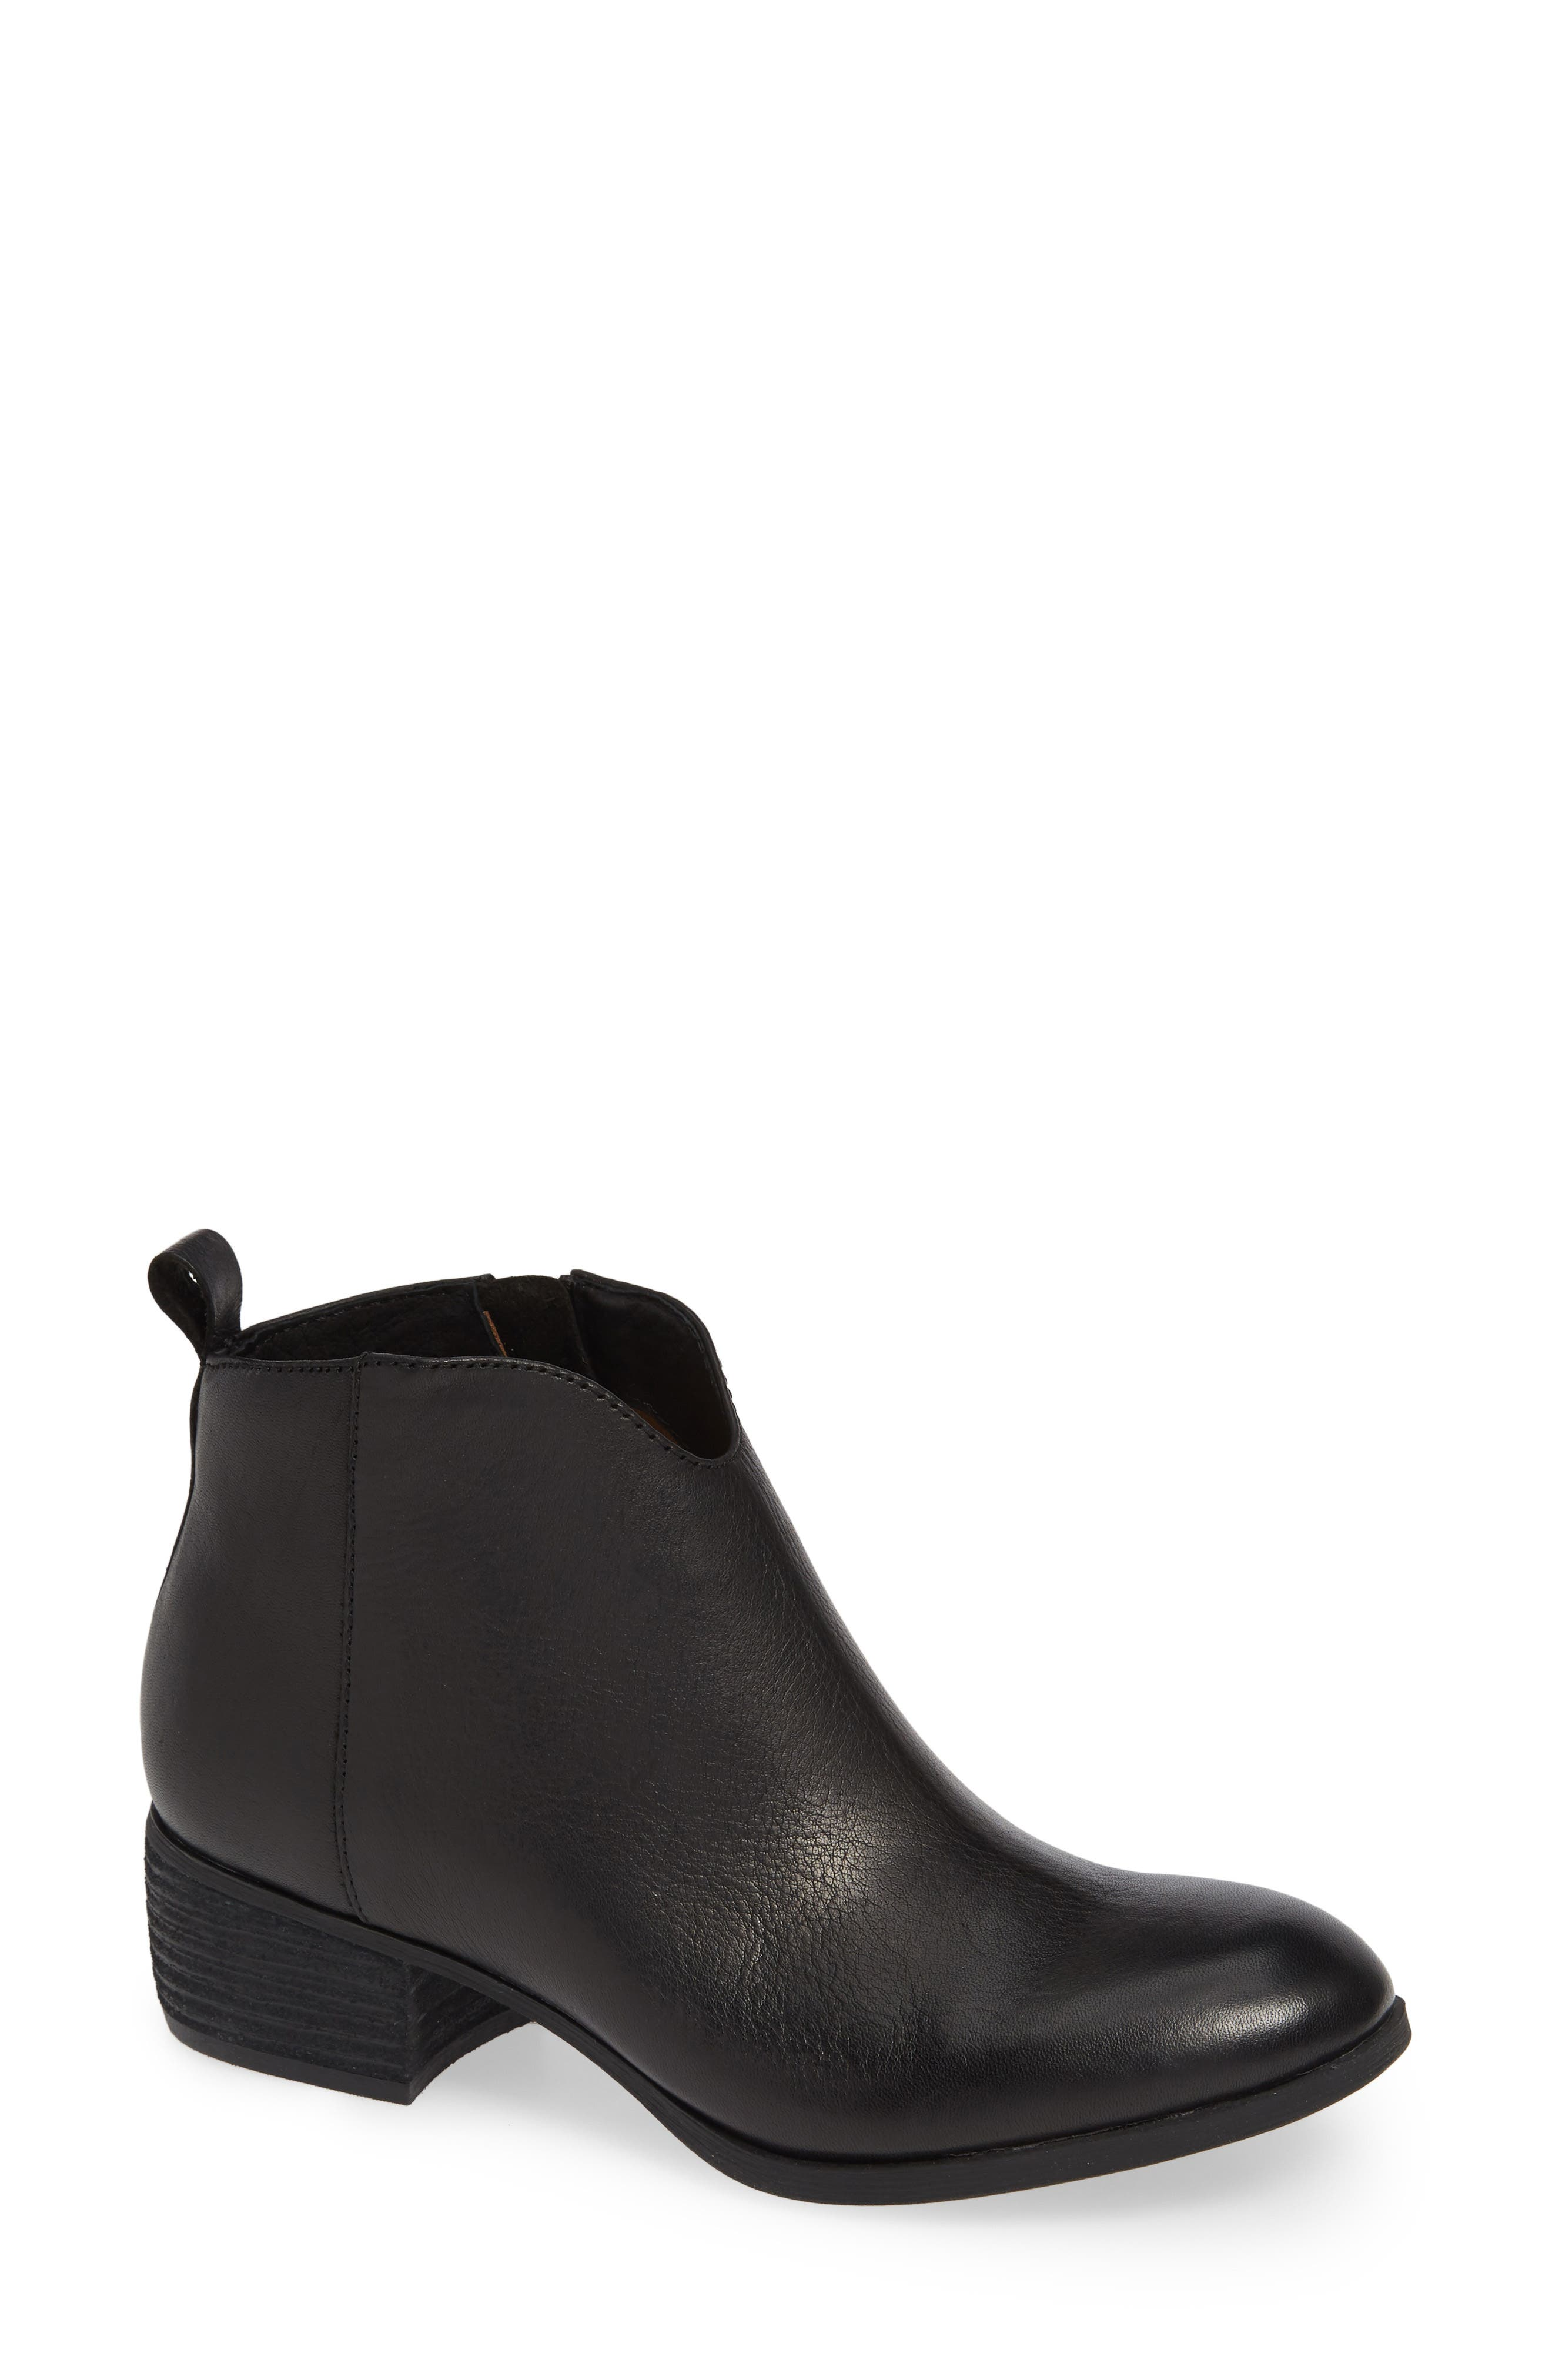 Coleta Bootie,                             Main thumbnail 1, color,                             BLACK LEATHER